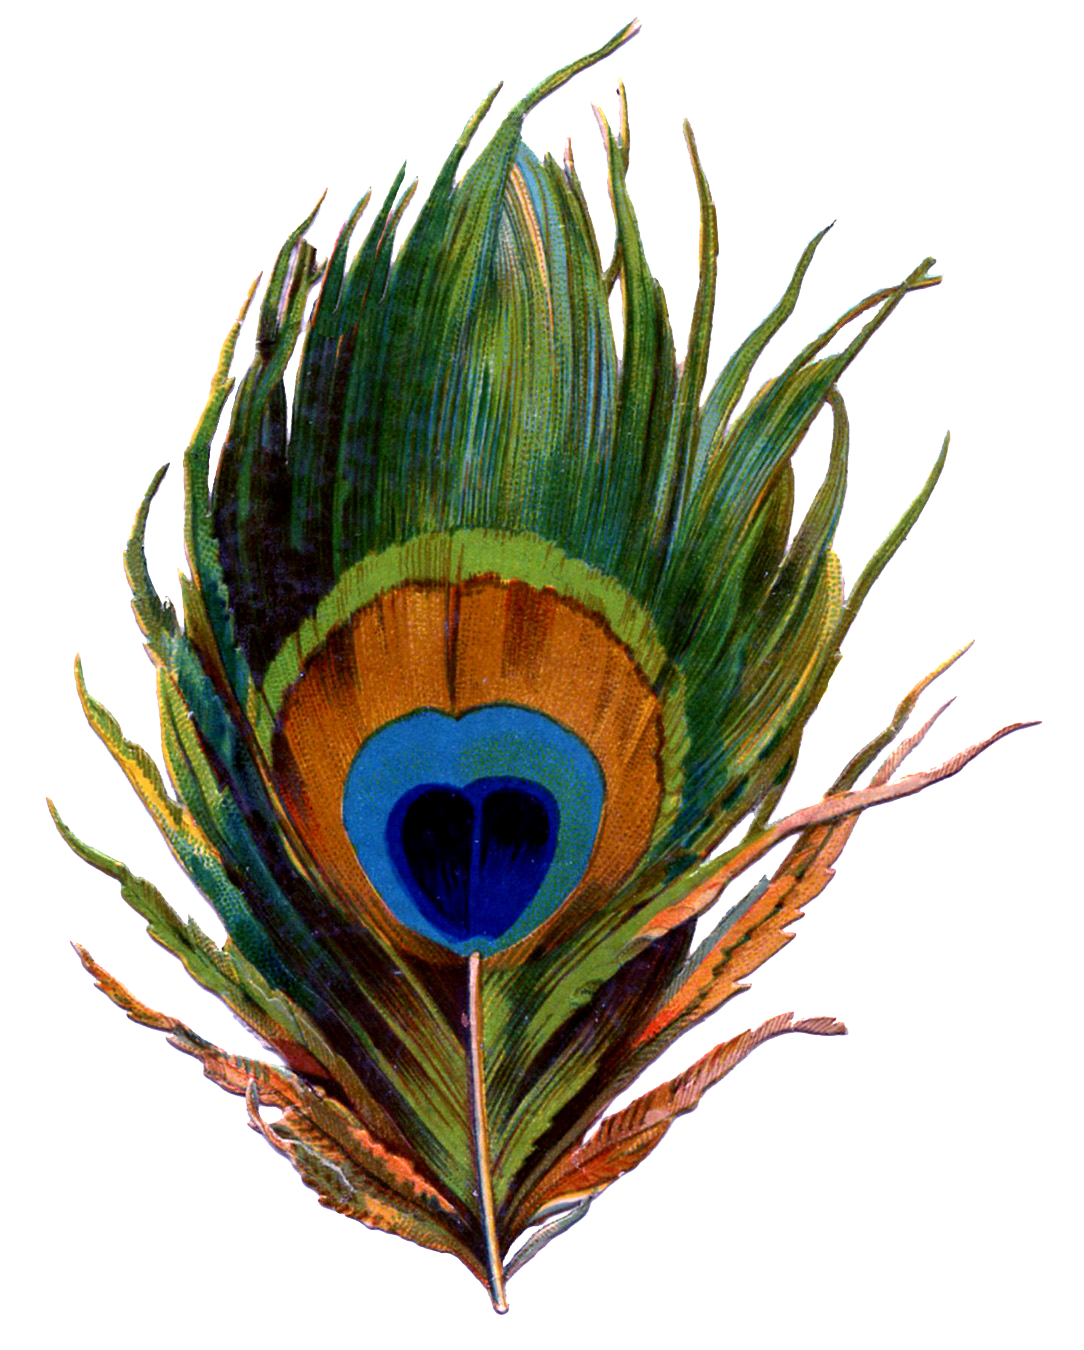 Feather clipart artistic. Peacock png transparent images